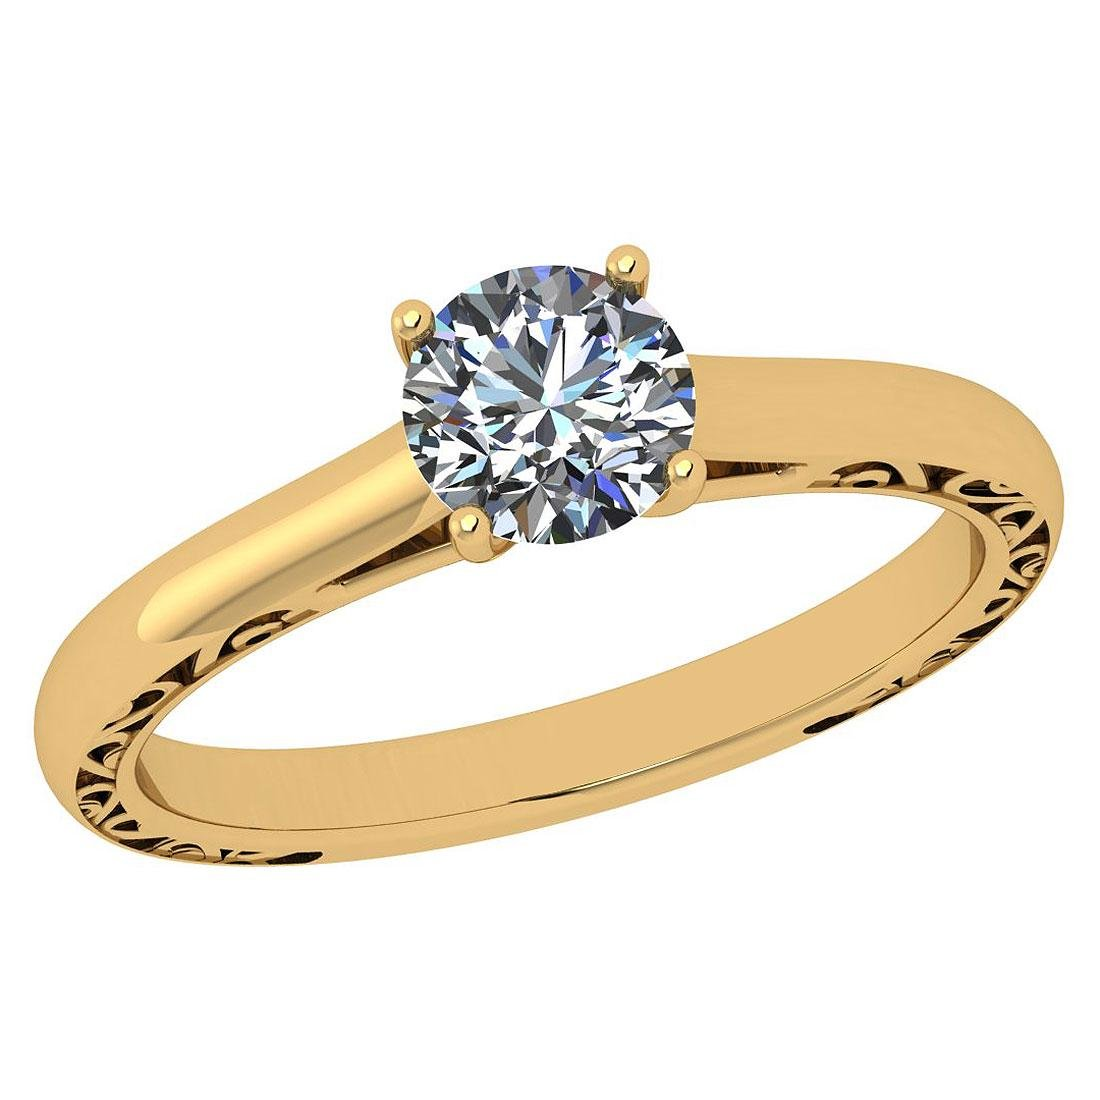 Certified Round 1 CTW J/VS2 Diamond Solitaire Ring In 1